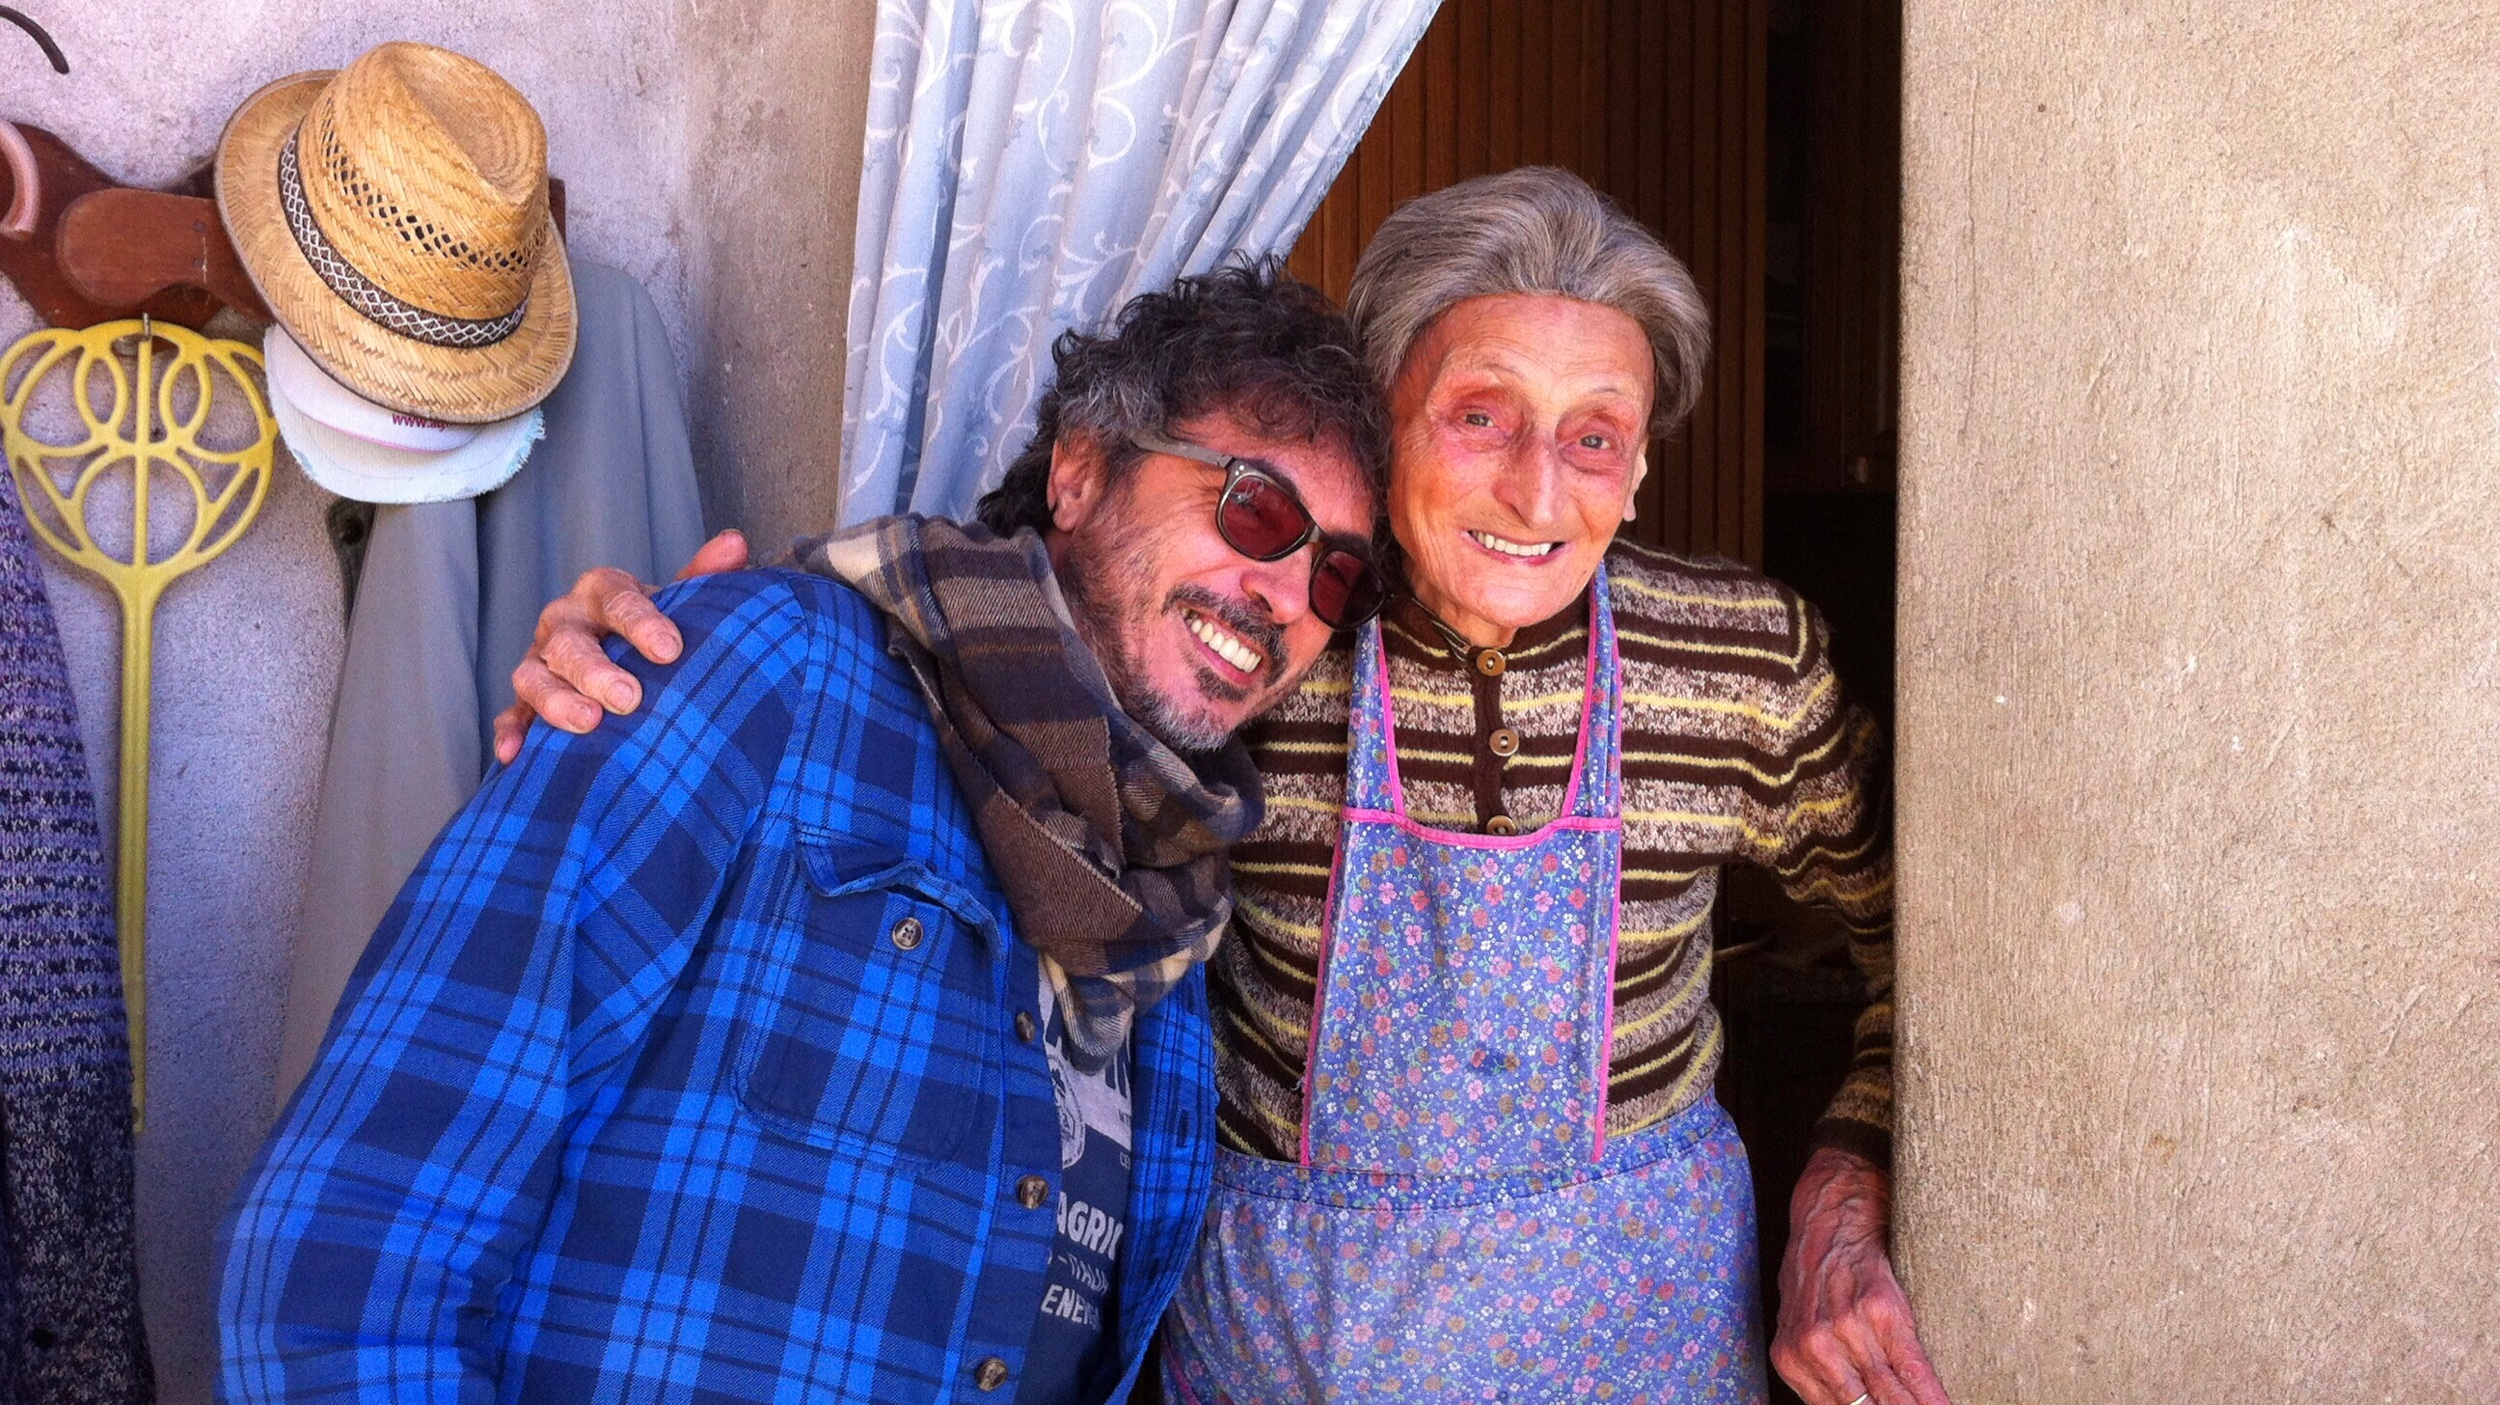 Baladin - Teo Musso with his mom (Piozzo, Italy)